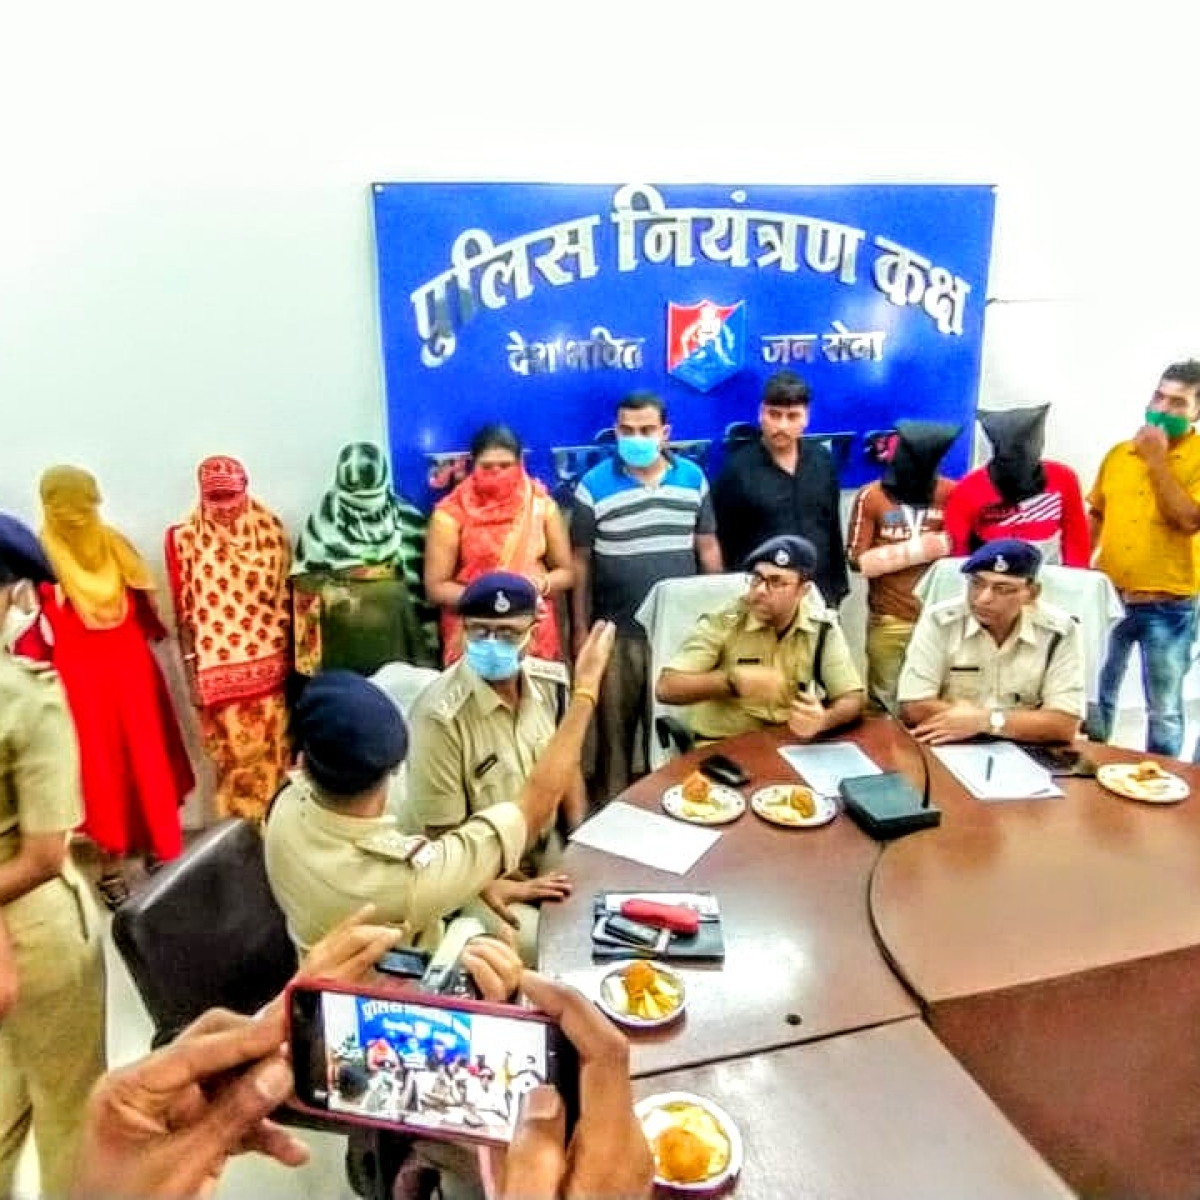 Indore: 10 held for woman's murder